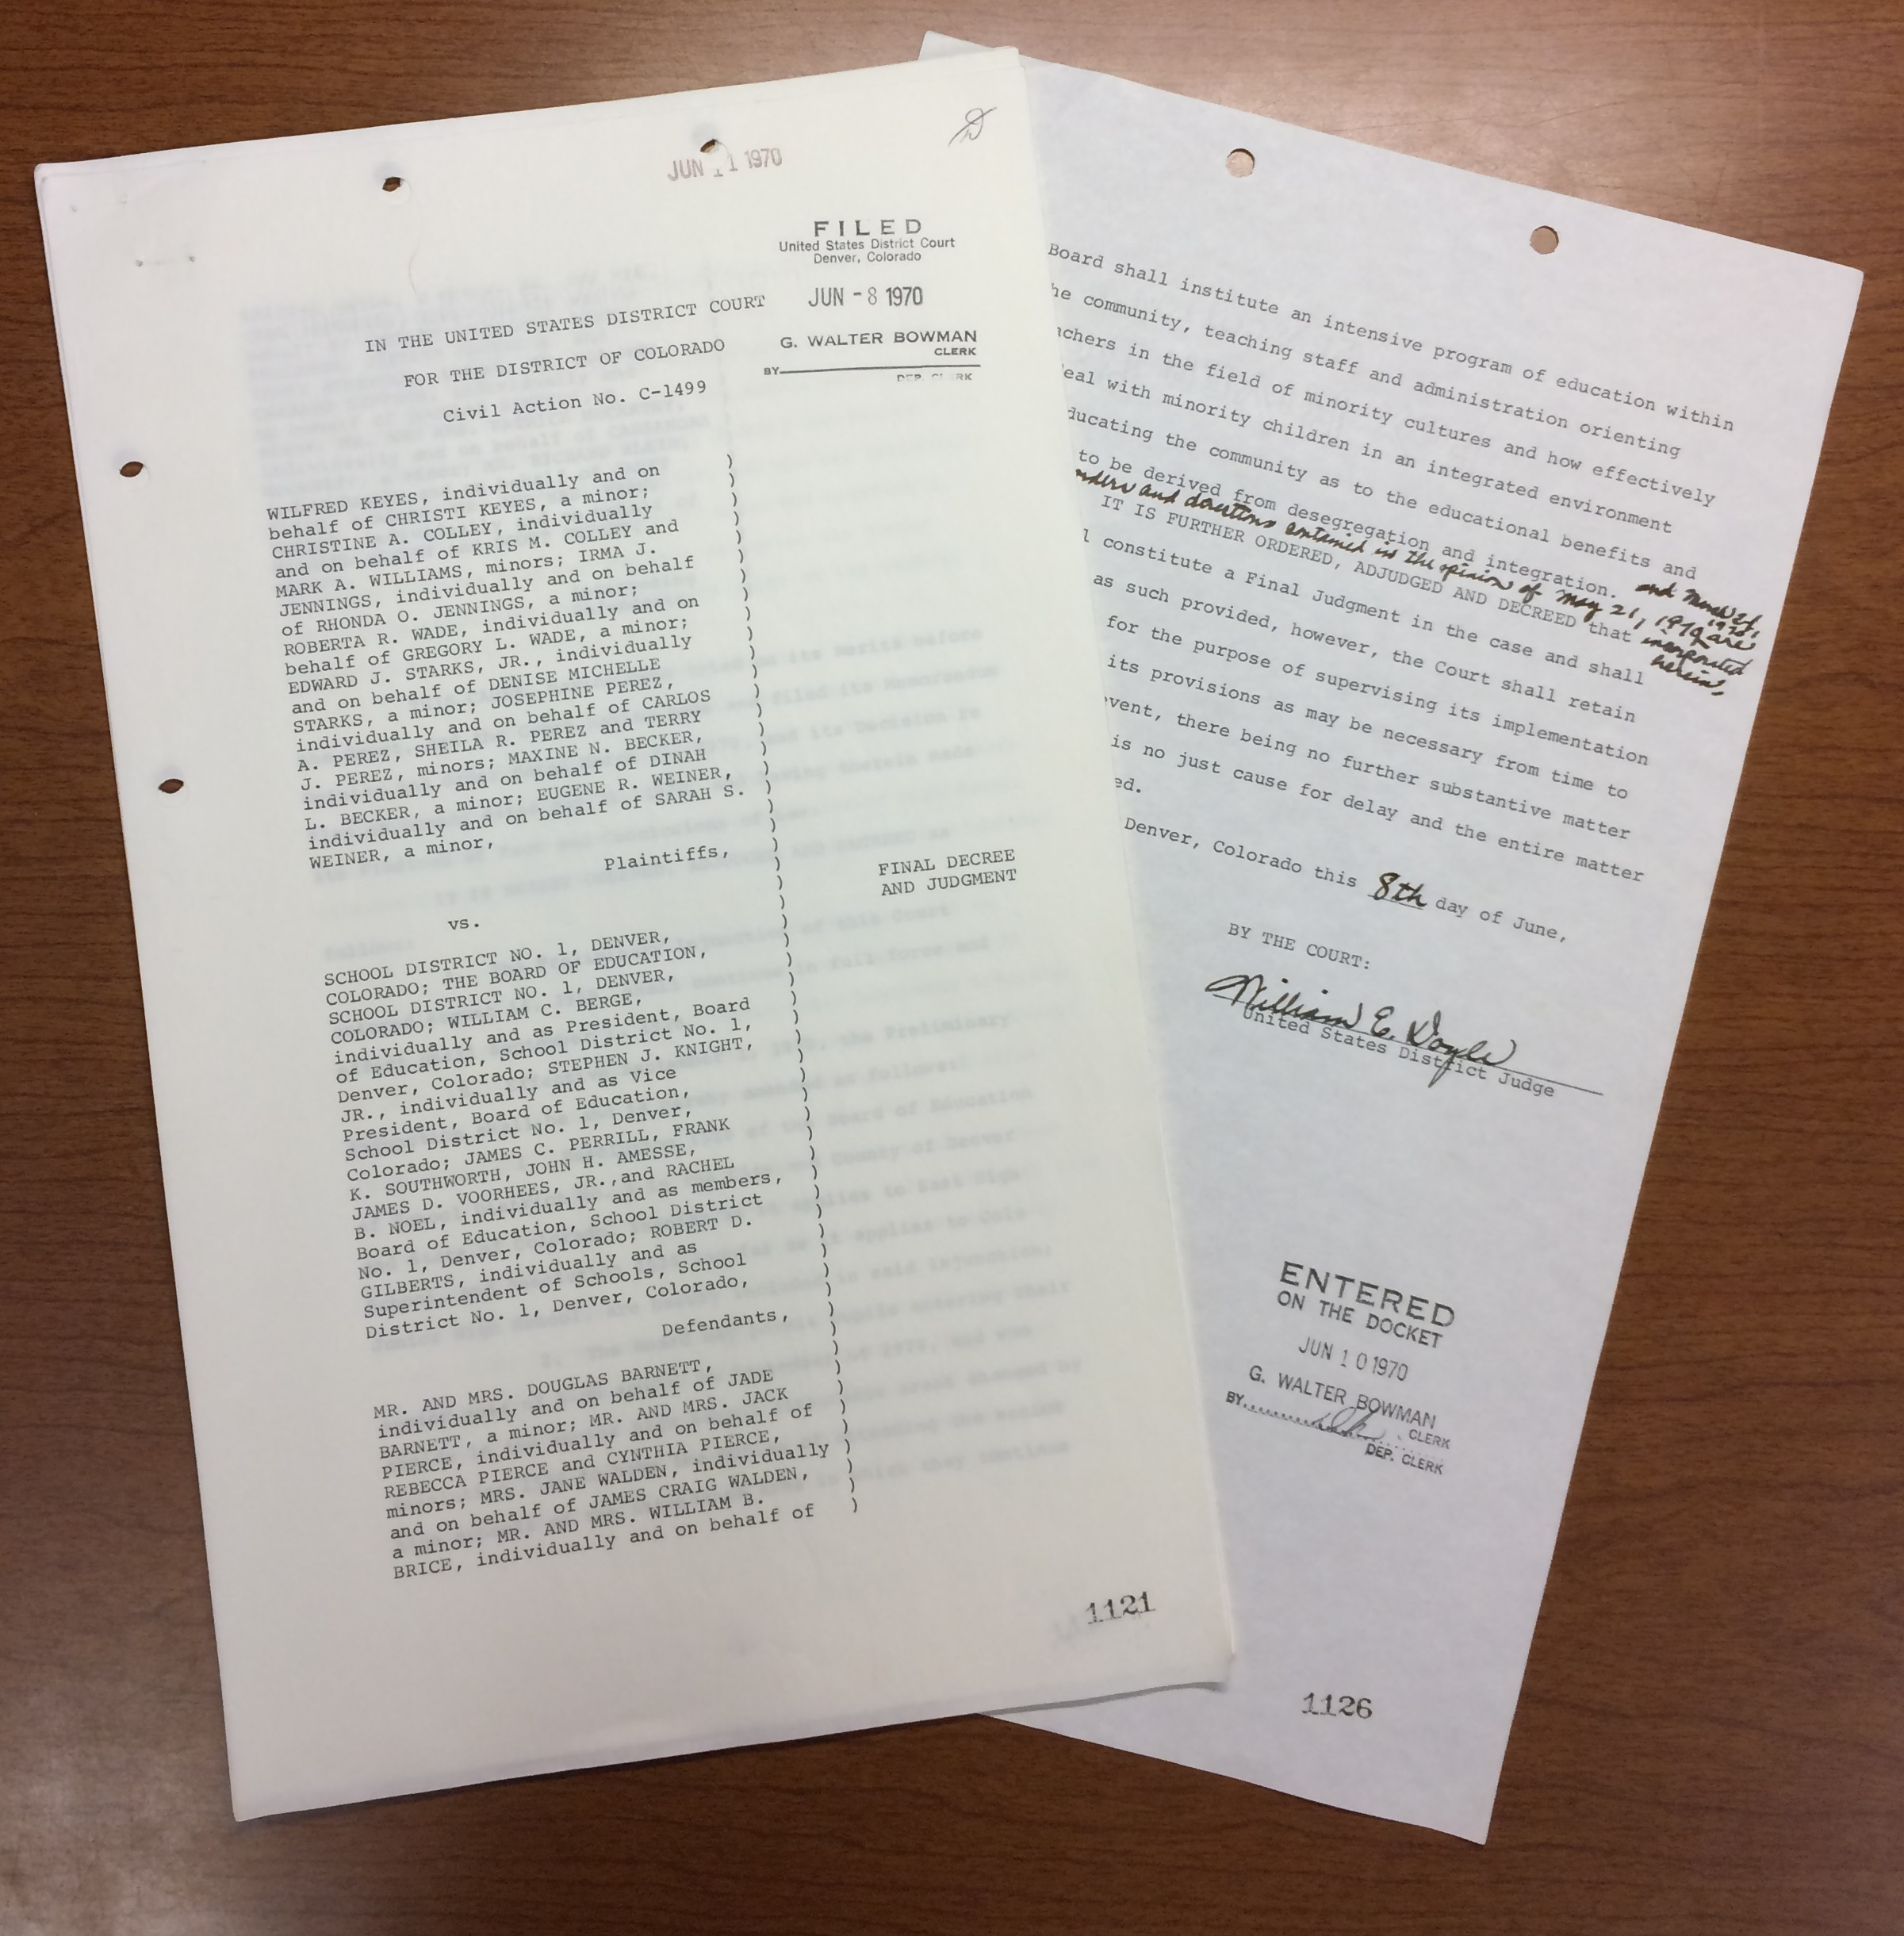 Image of documents from the Final Decree and Judgement signed by Judge Doyle.